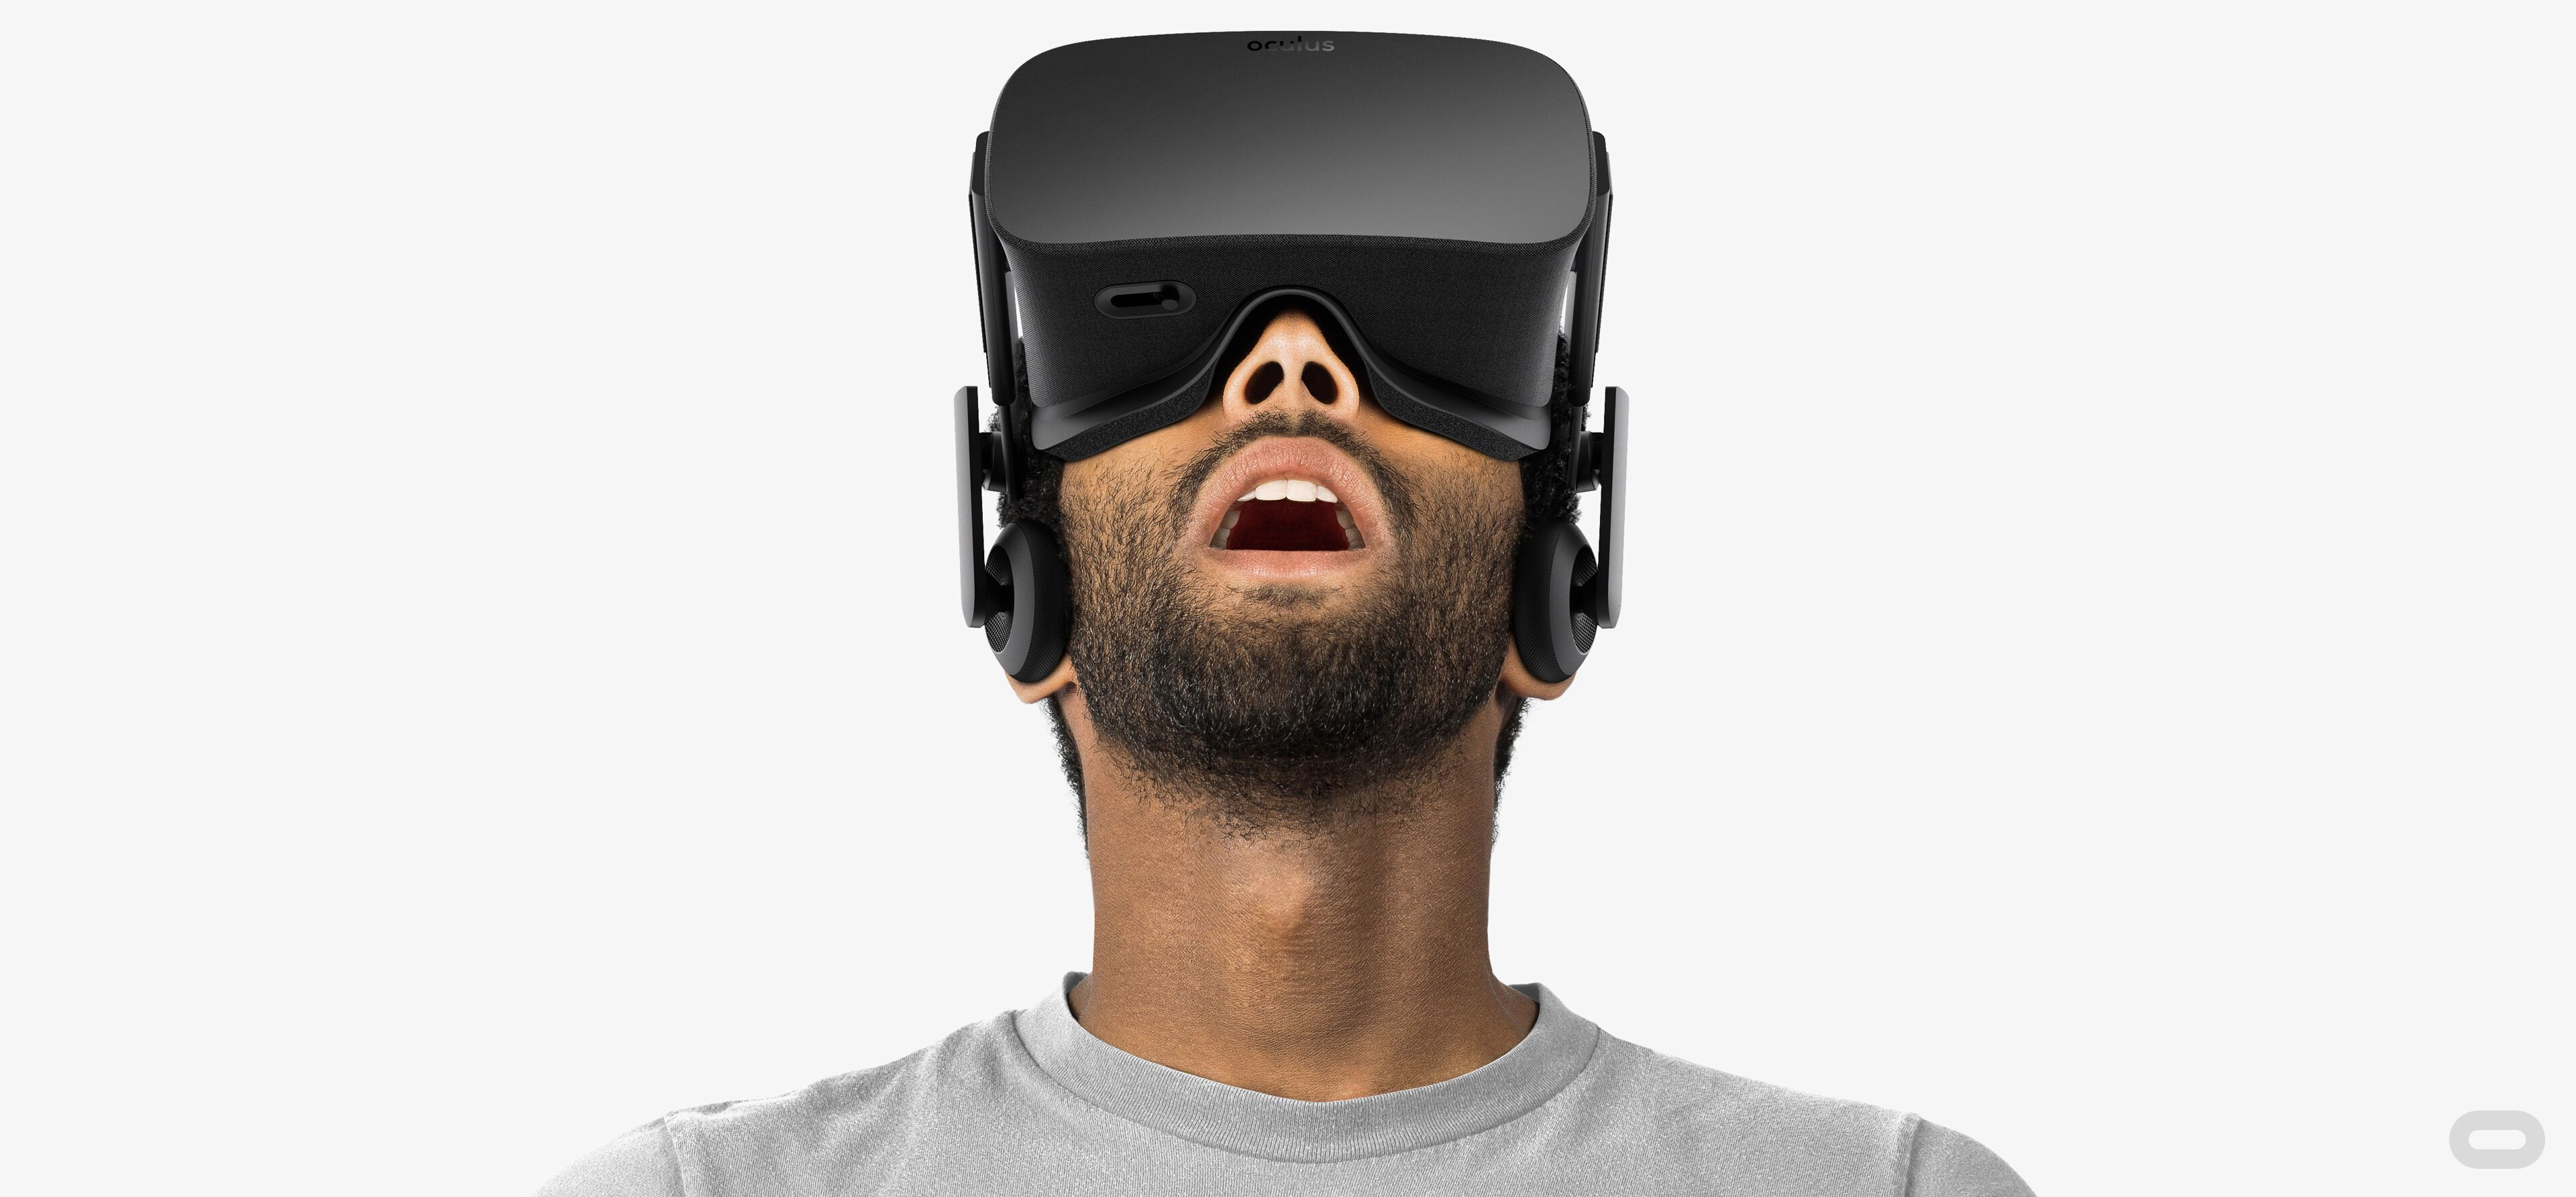 Why VR games won't care which headset you're using | PC Gamer